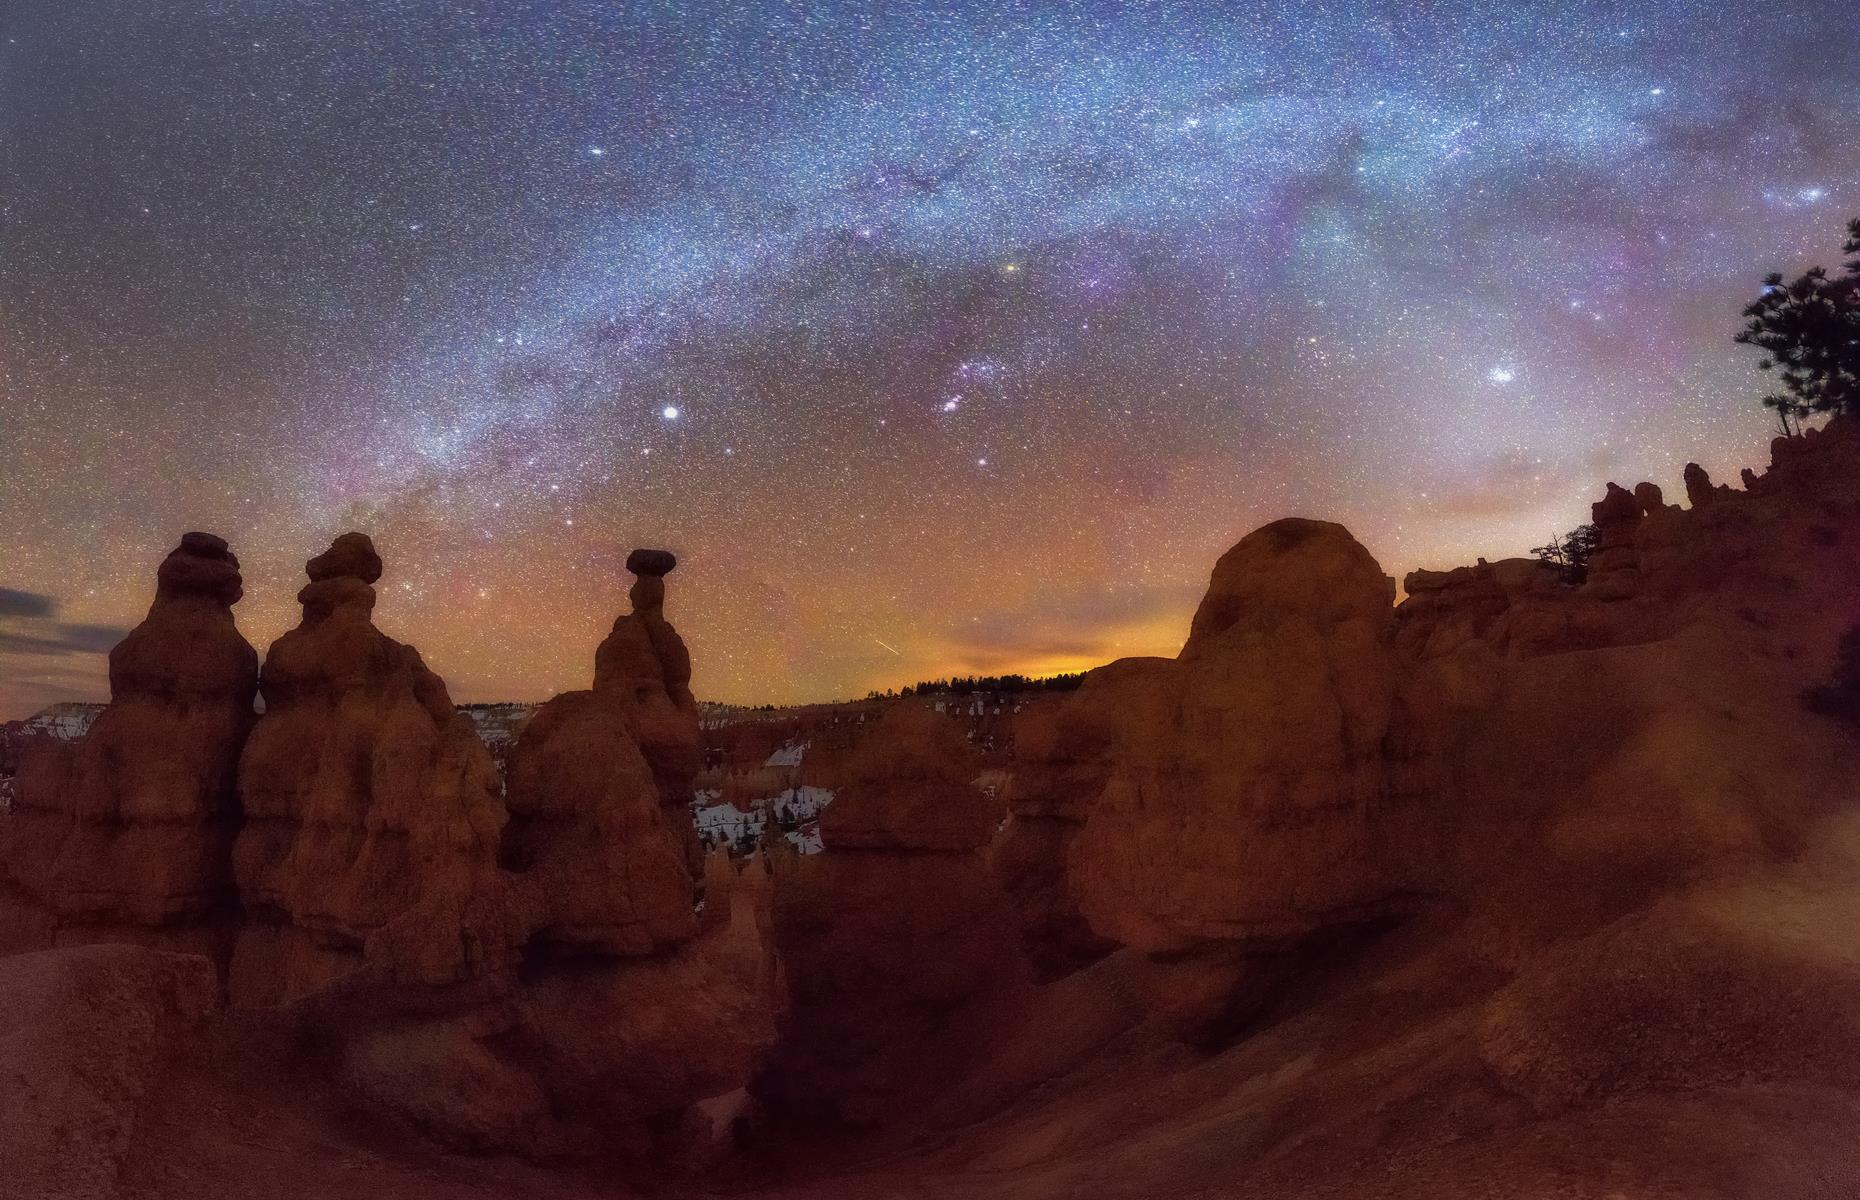 Slide 6 of 30: Stargazers are spoilt for choice in Utah, which has over a dozen IDA-certified spots – Bryce Canyon National Park joined their ranks in 2019. The park typically offers 100-plus annual astronomy programs involving stargazing expeditions with telescopes, and though the annual Astronomy Festival was canceled this year, Bryce Canyon restarted some of its dark-sky events in July. Double check the NPS website for details.